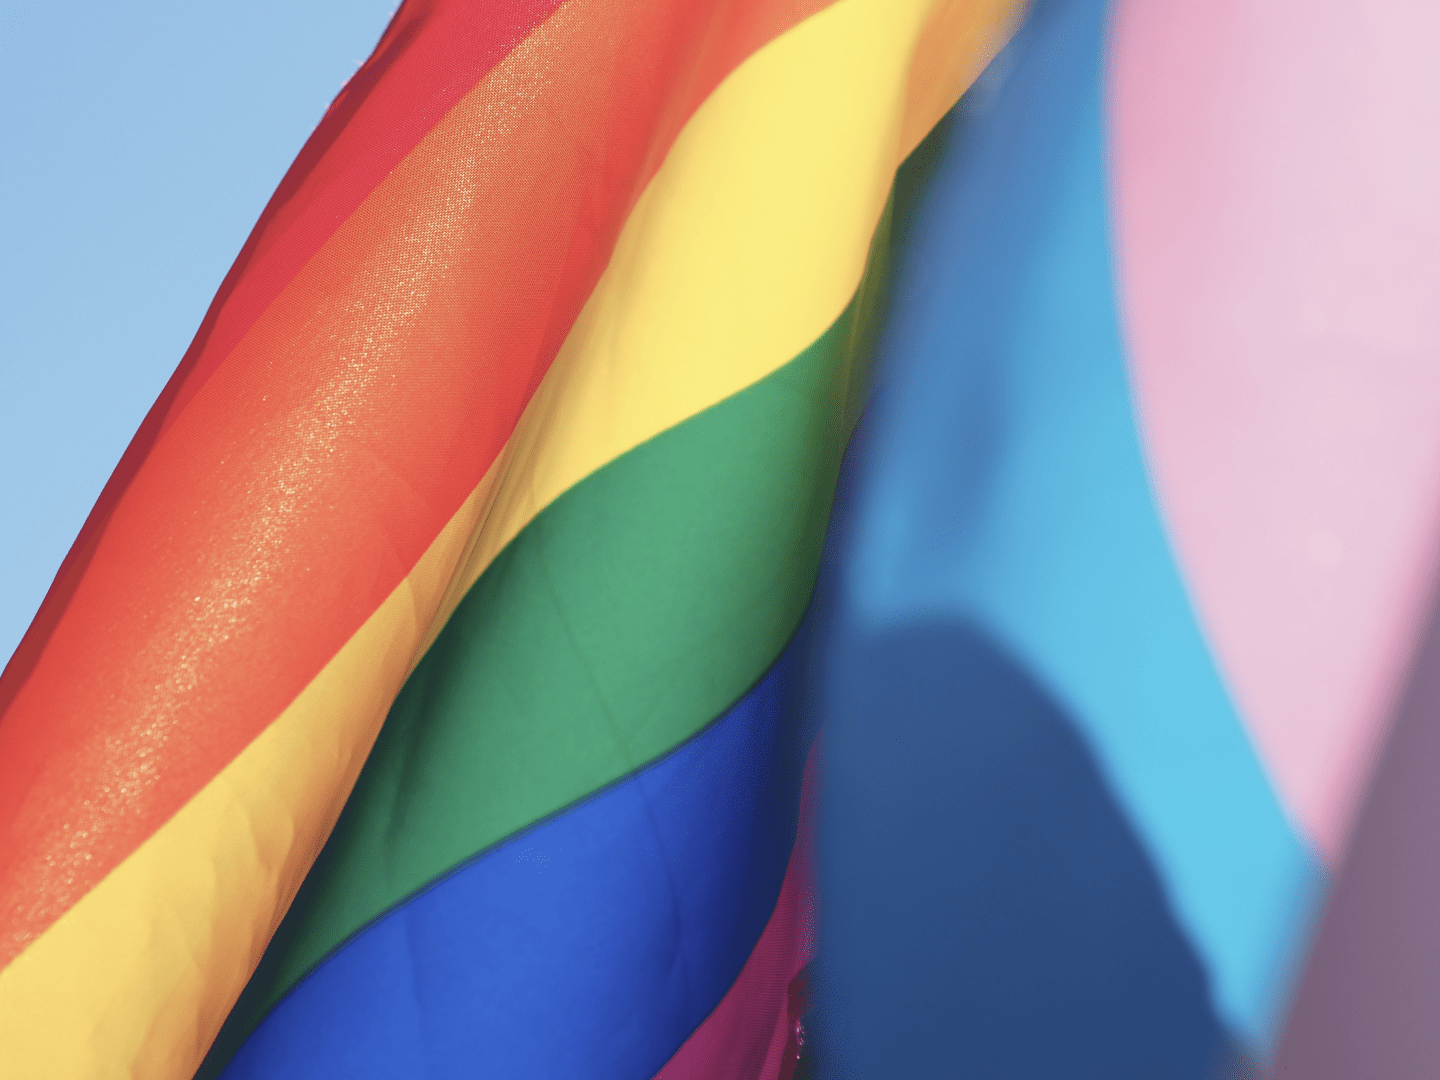 FiveLGBTQ+ founded SaaS companies to support in June and beyond | Vendr